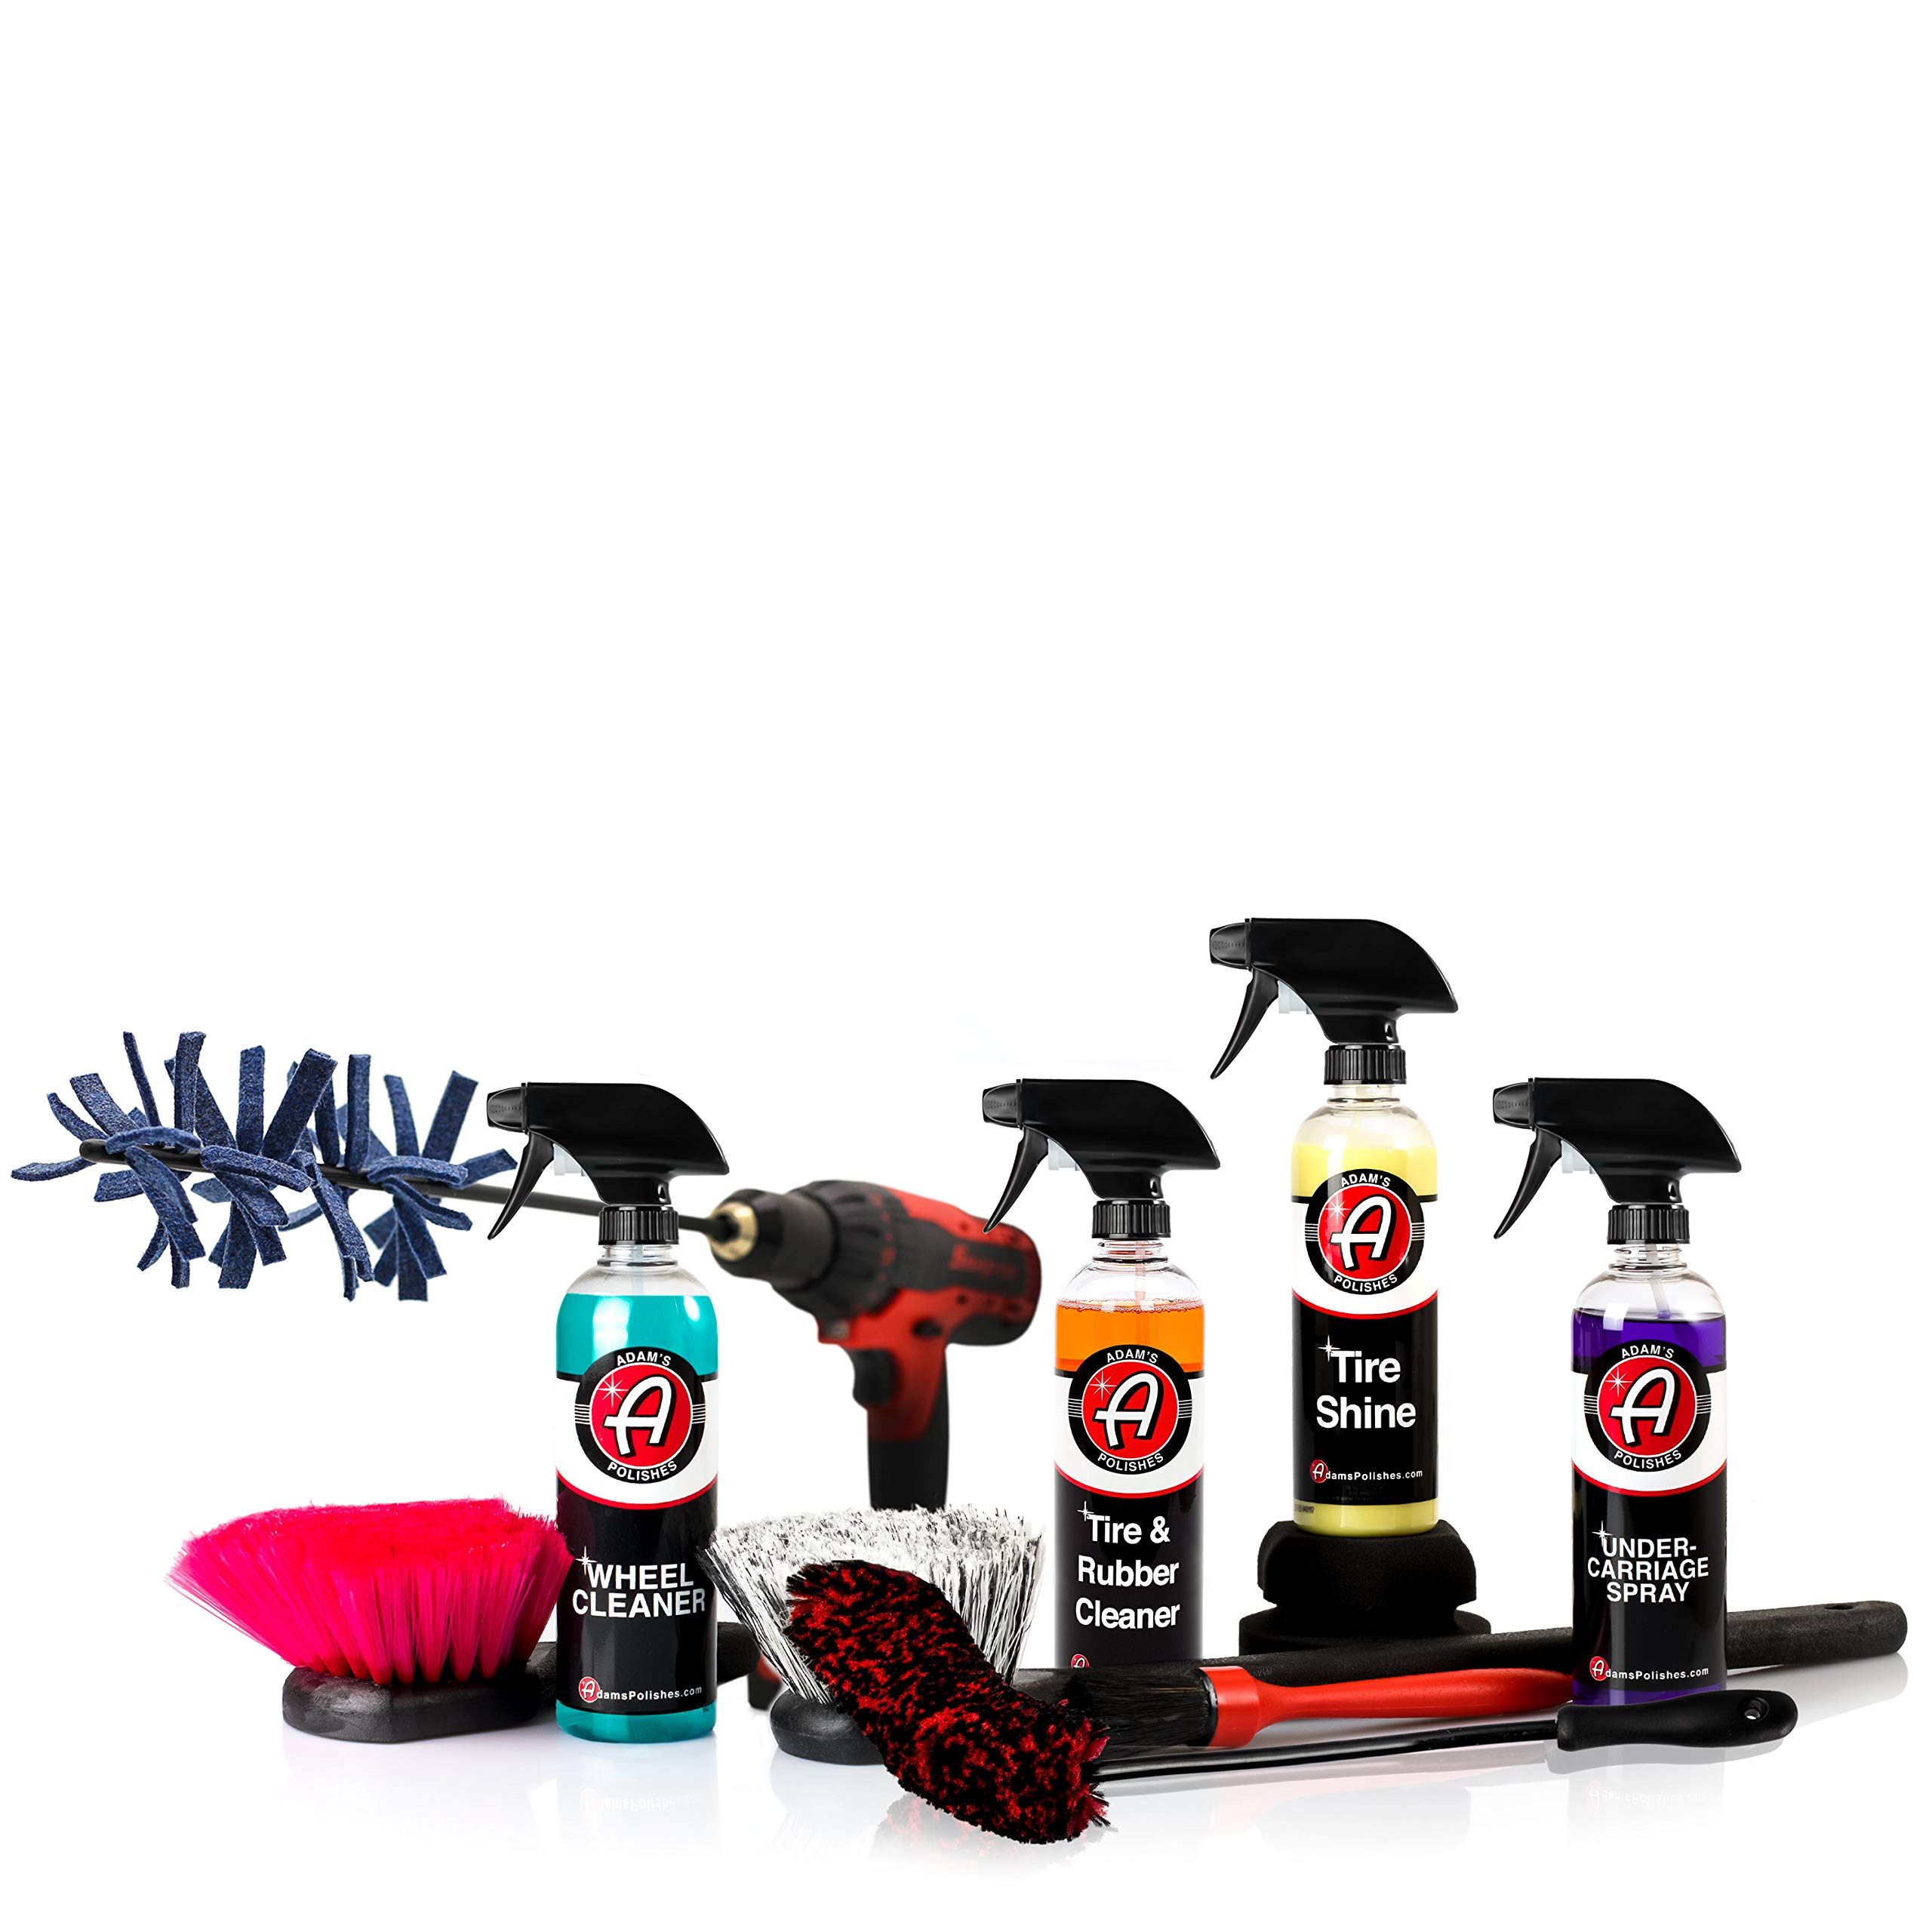 Adam's Complete Wheel & Tire Car Kit to Professionally Detail Your Wheels & Tires - Wheel & Tire Cleaner with All Brushes Needed (Ultimate Wheel & Tire Kit)